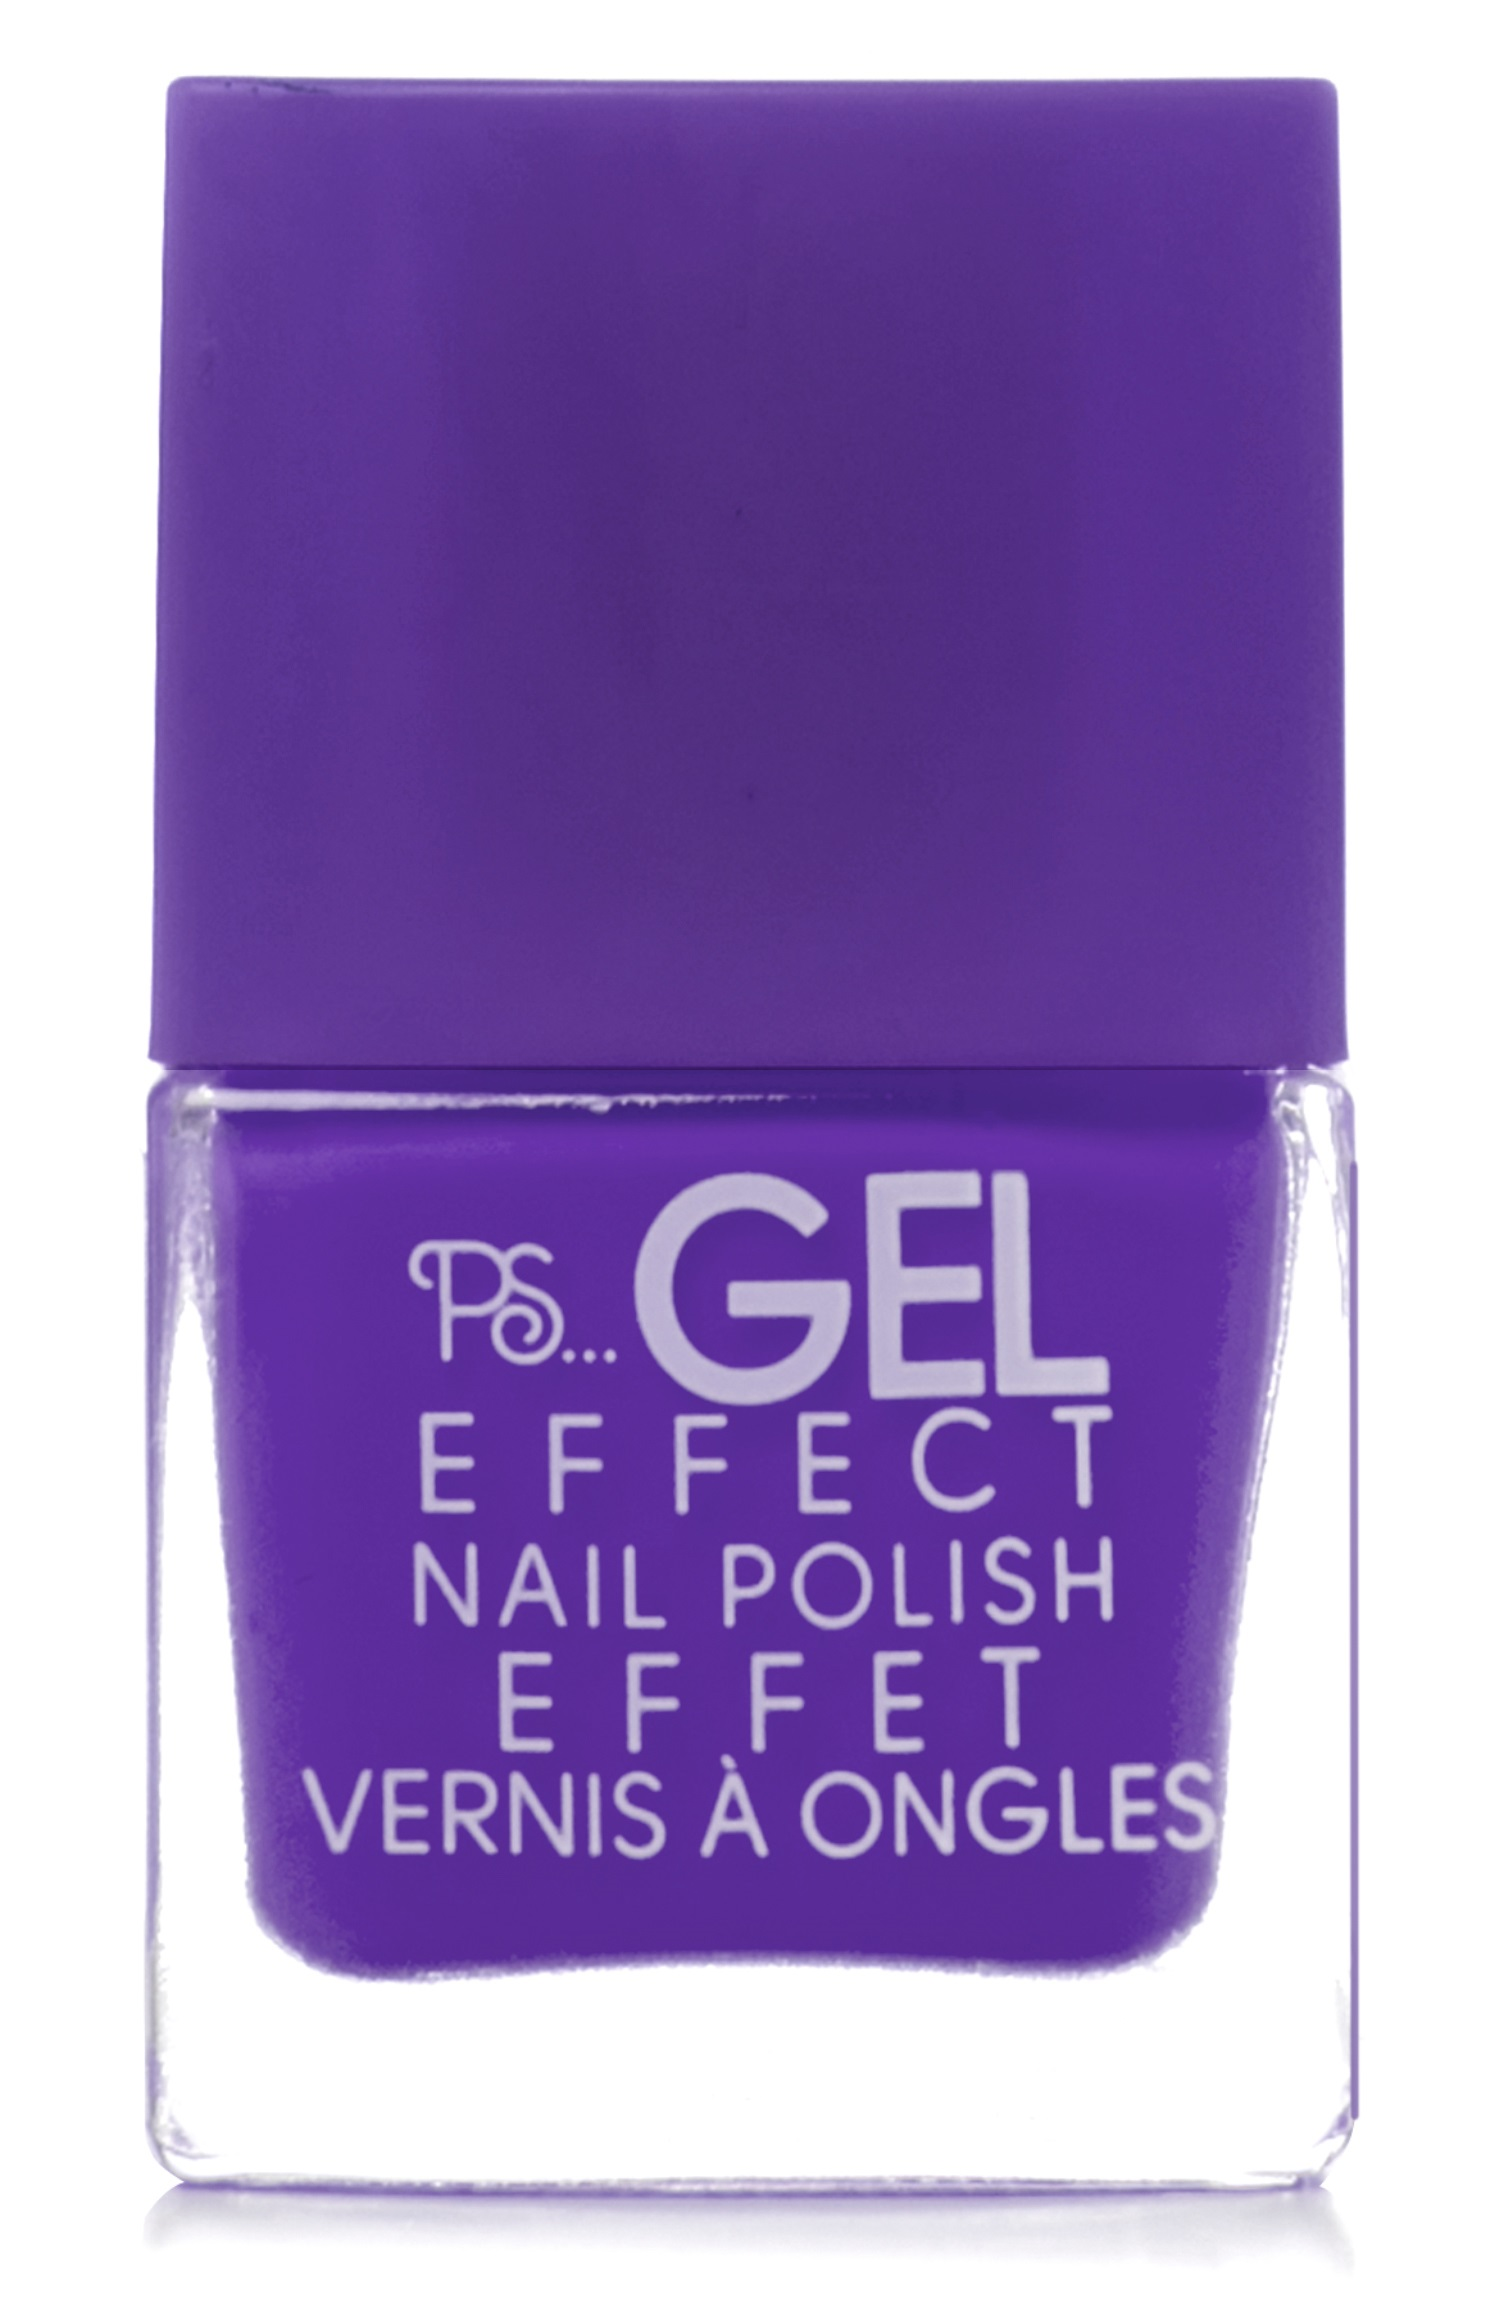 Nail Polishes Penneys